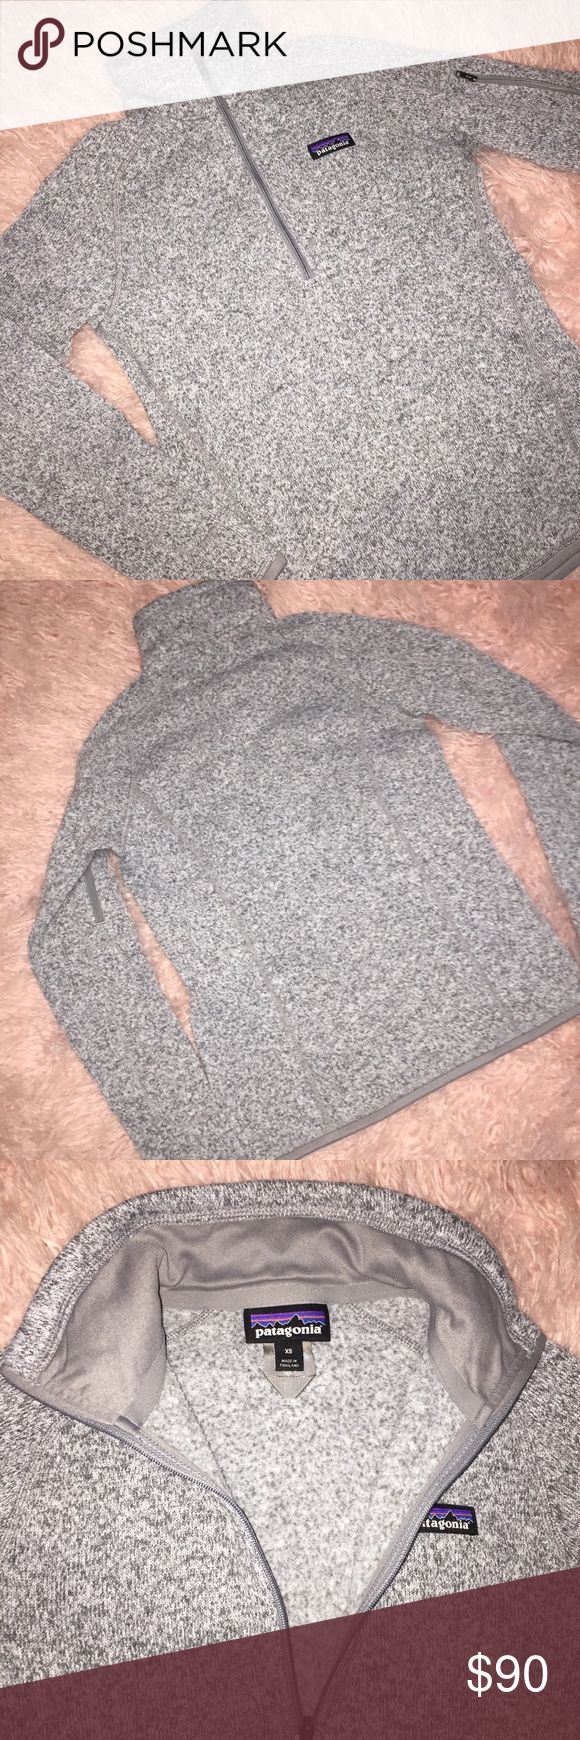 Patagonia Perfect Sweater Patagonia Perfect Sweater Brand new without tags Trades Modeling Patagonia Tops Sweatshirts & Hoodies